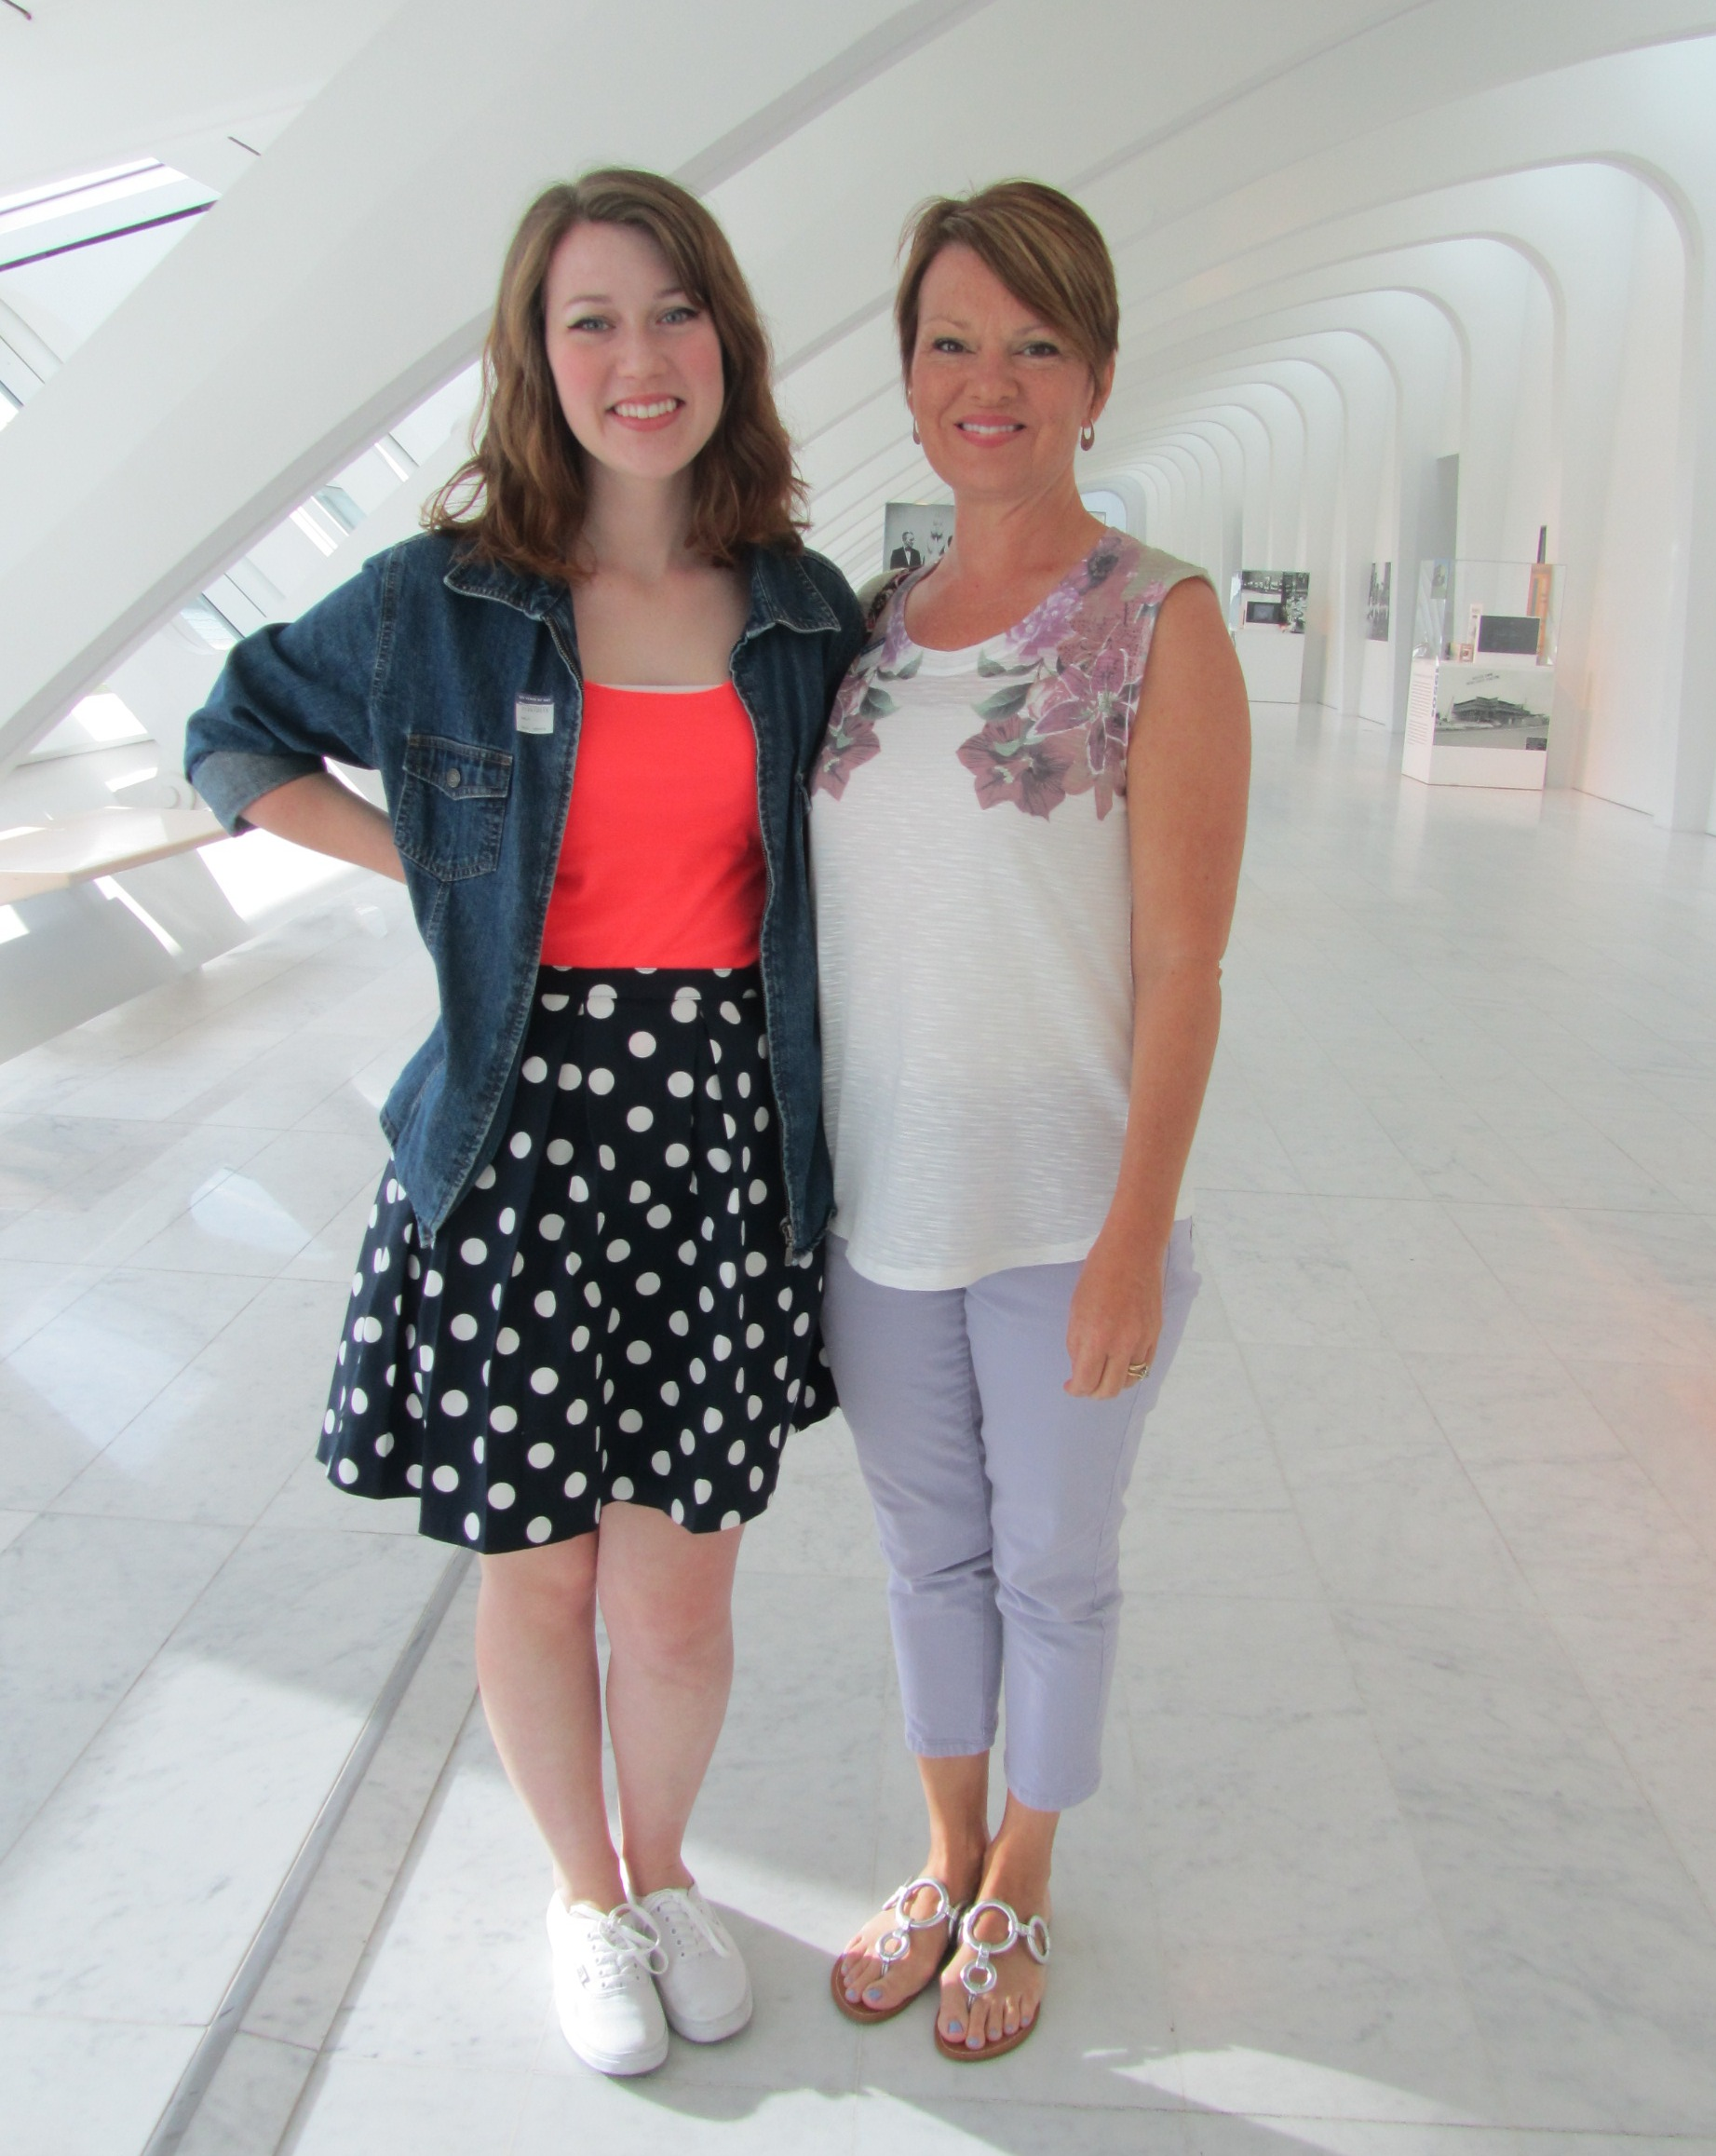 Sherri and Emma Robertson visit the Museum on July 24, 2013. Photo by the author.